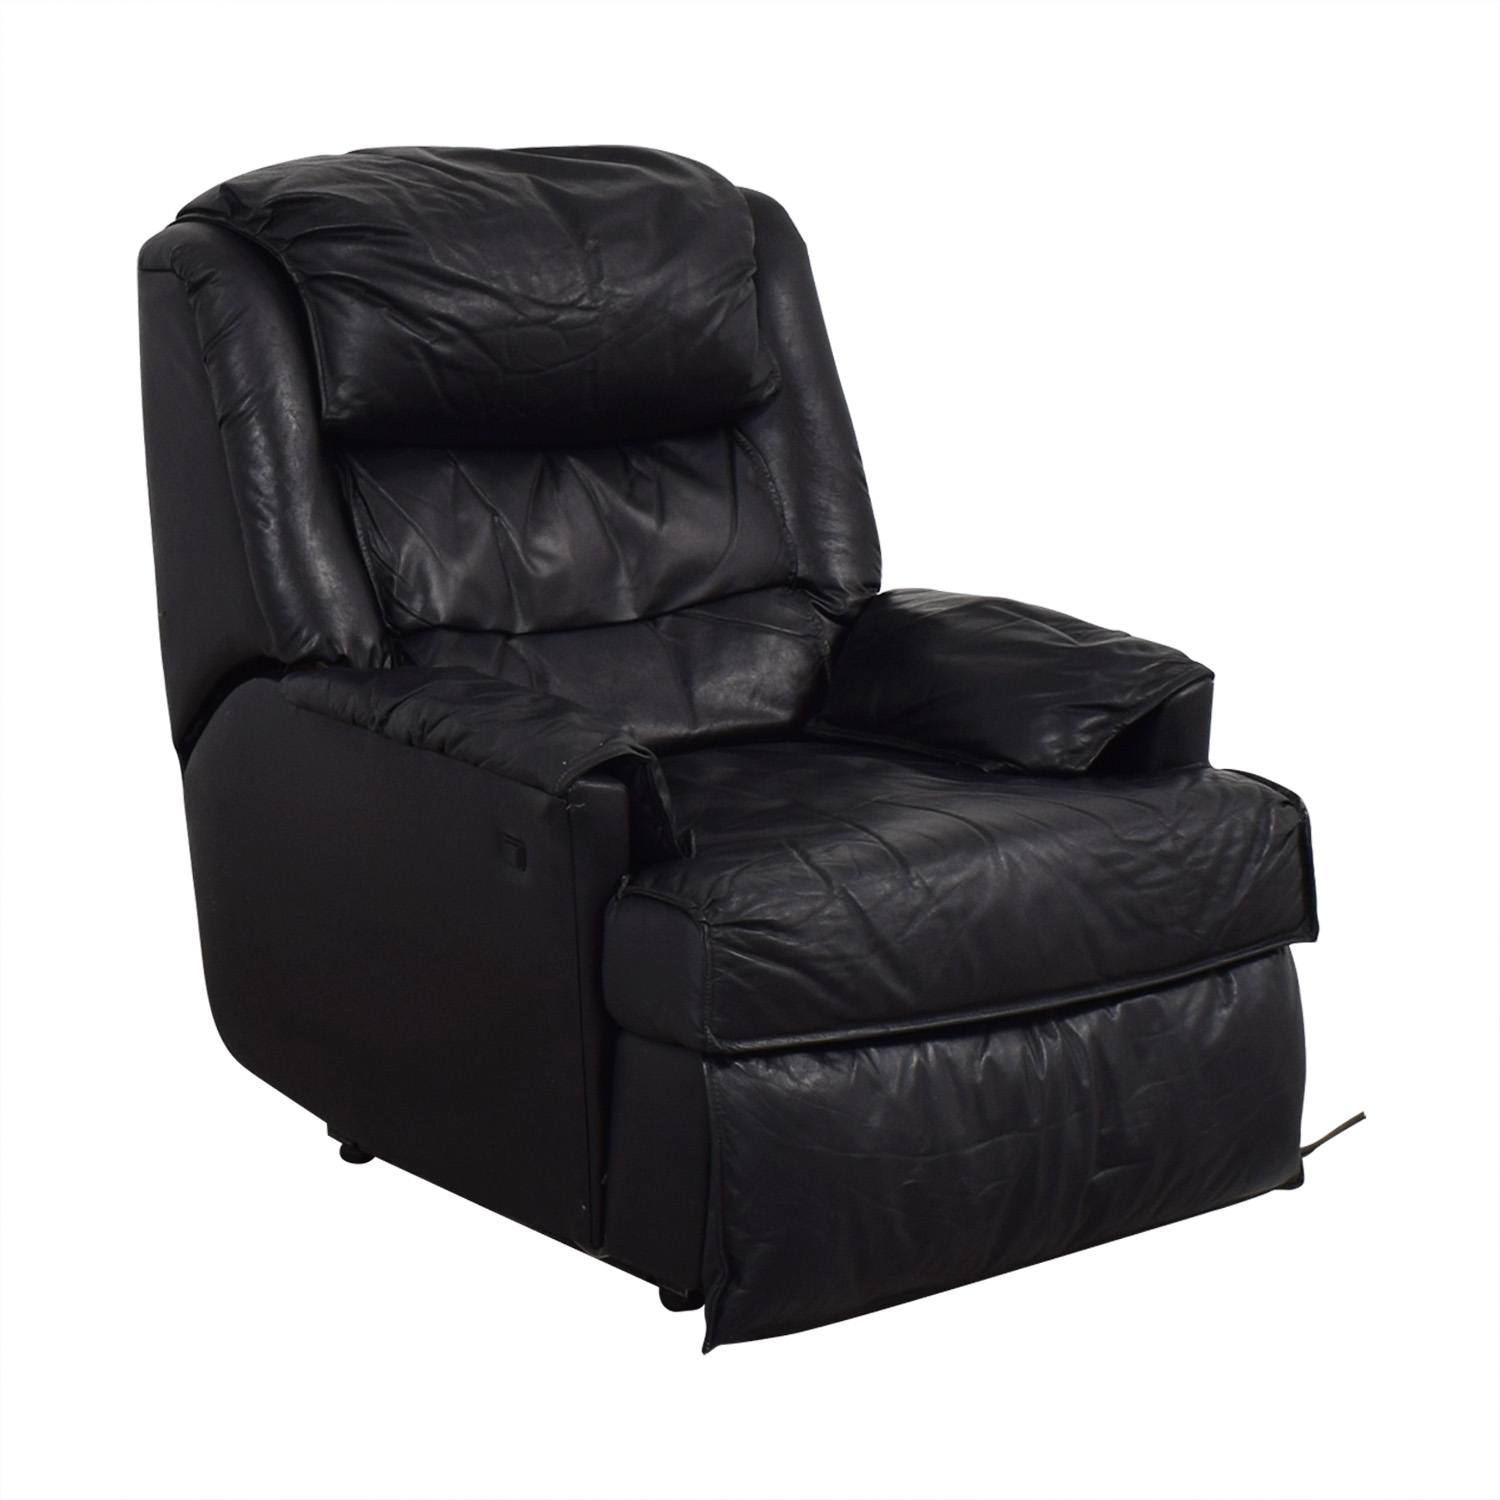 shop Barcalounger Leather Recliner Barcalounger